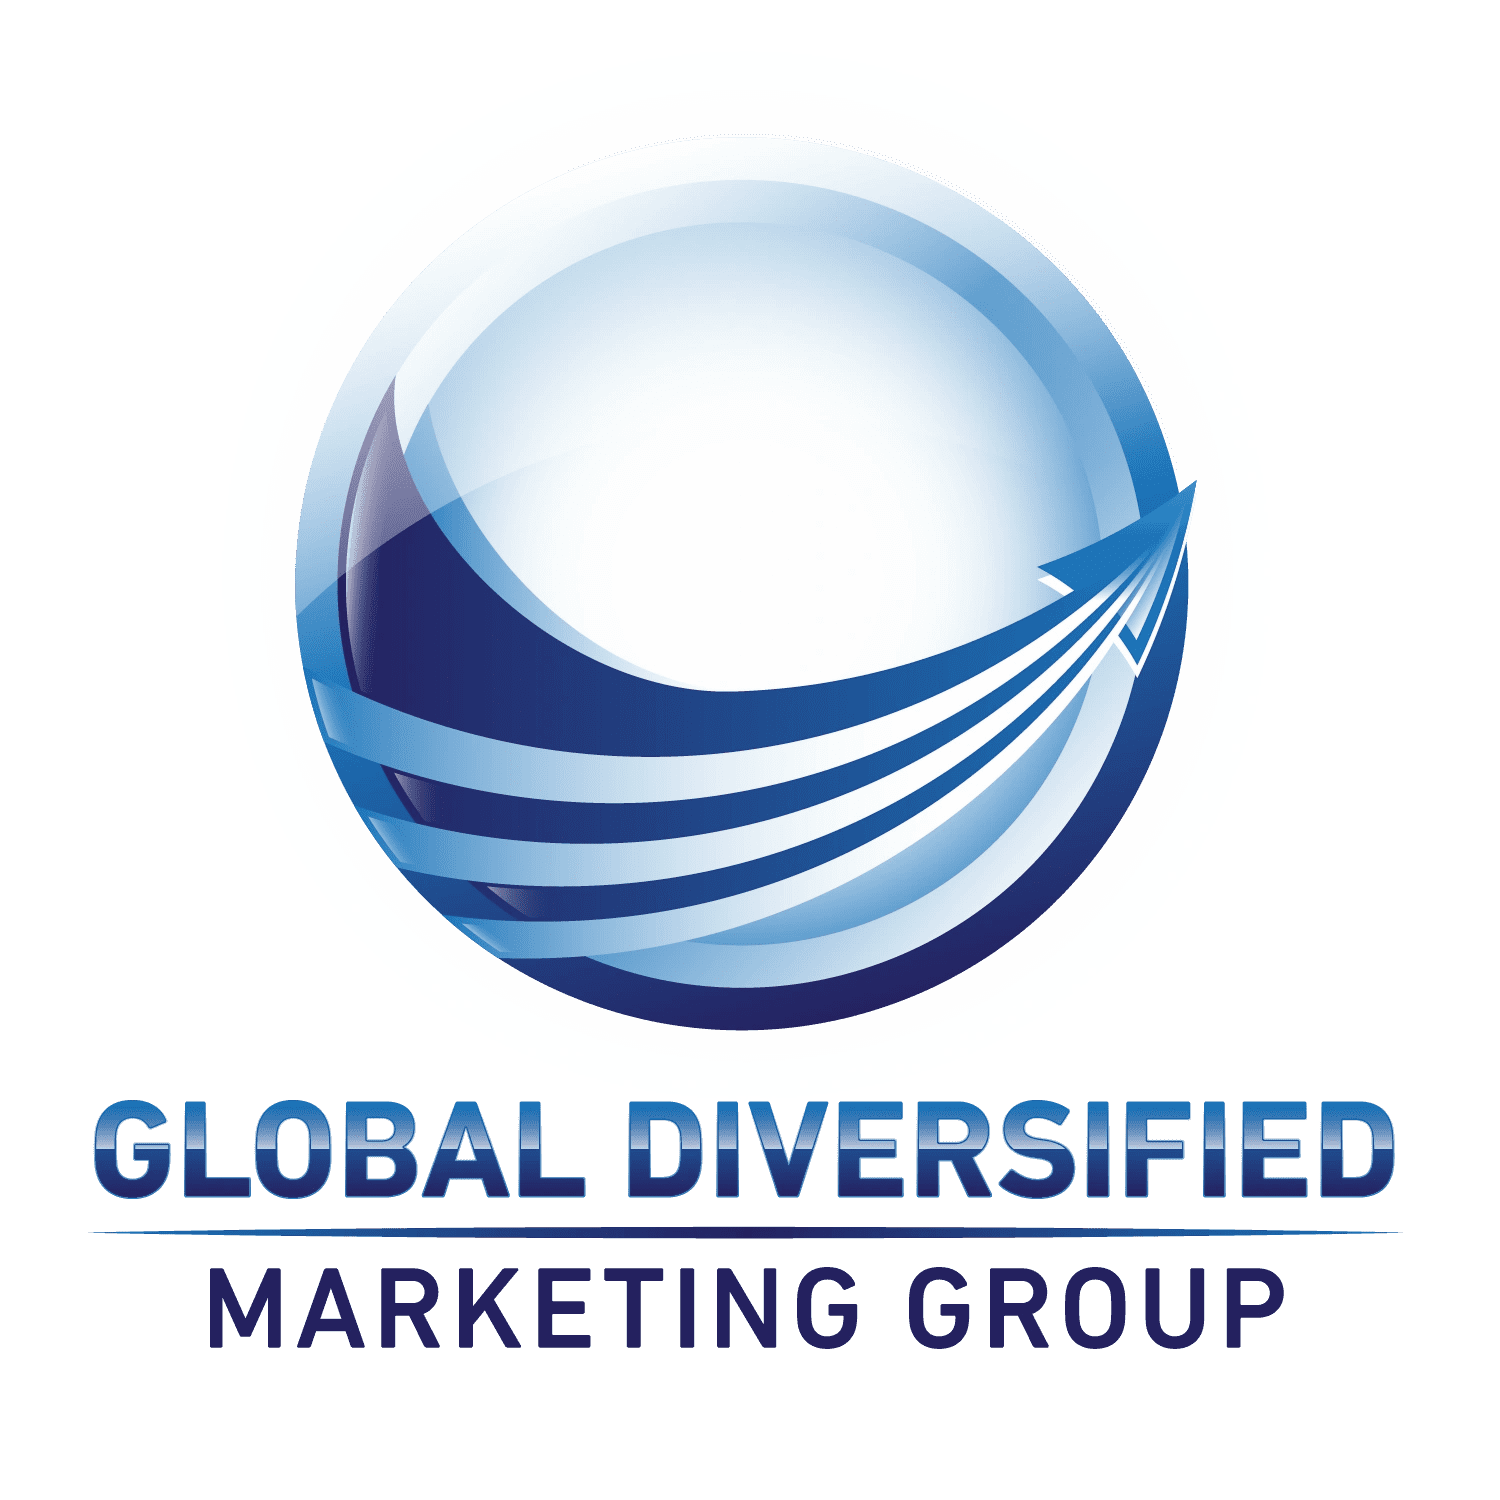 Profitable Company Global Diversified (Stock Symbol: GDMK) reports Record Revenue for 2020 with Continued Growth Expected